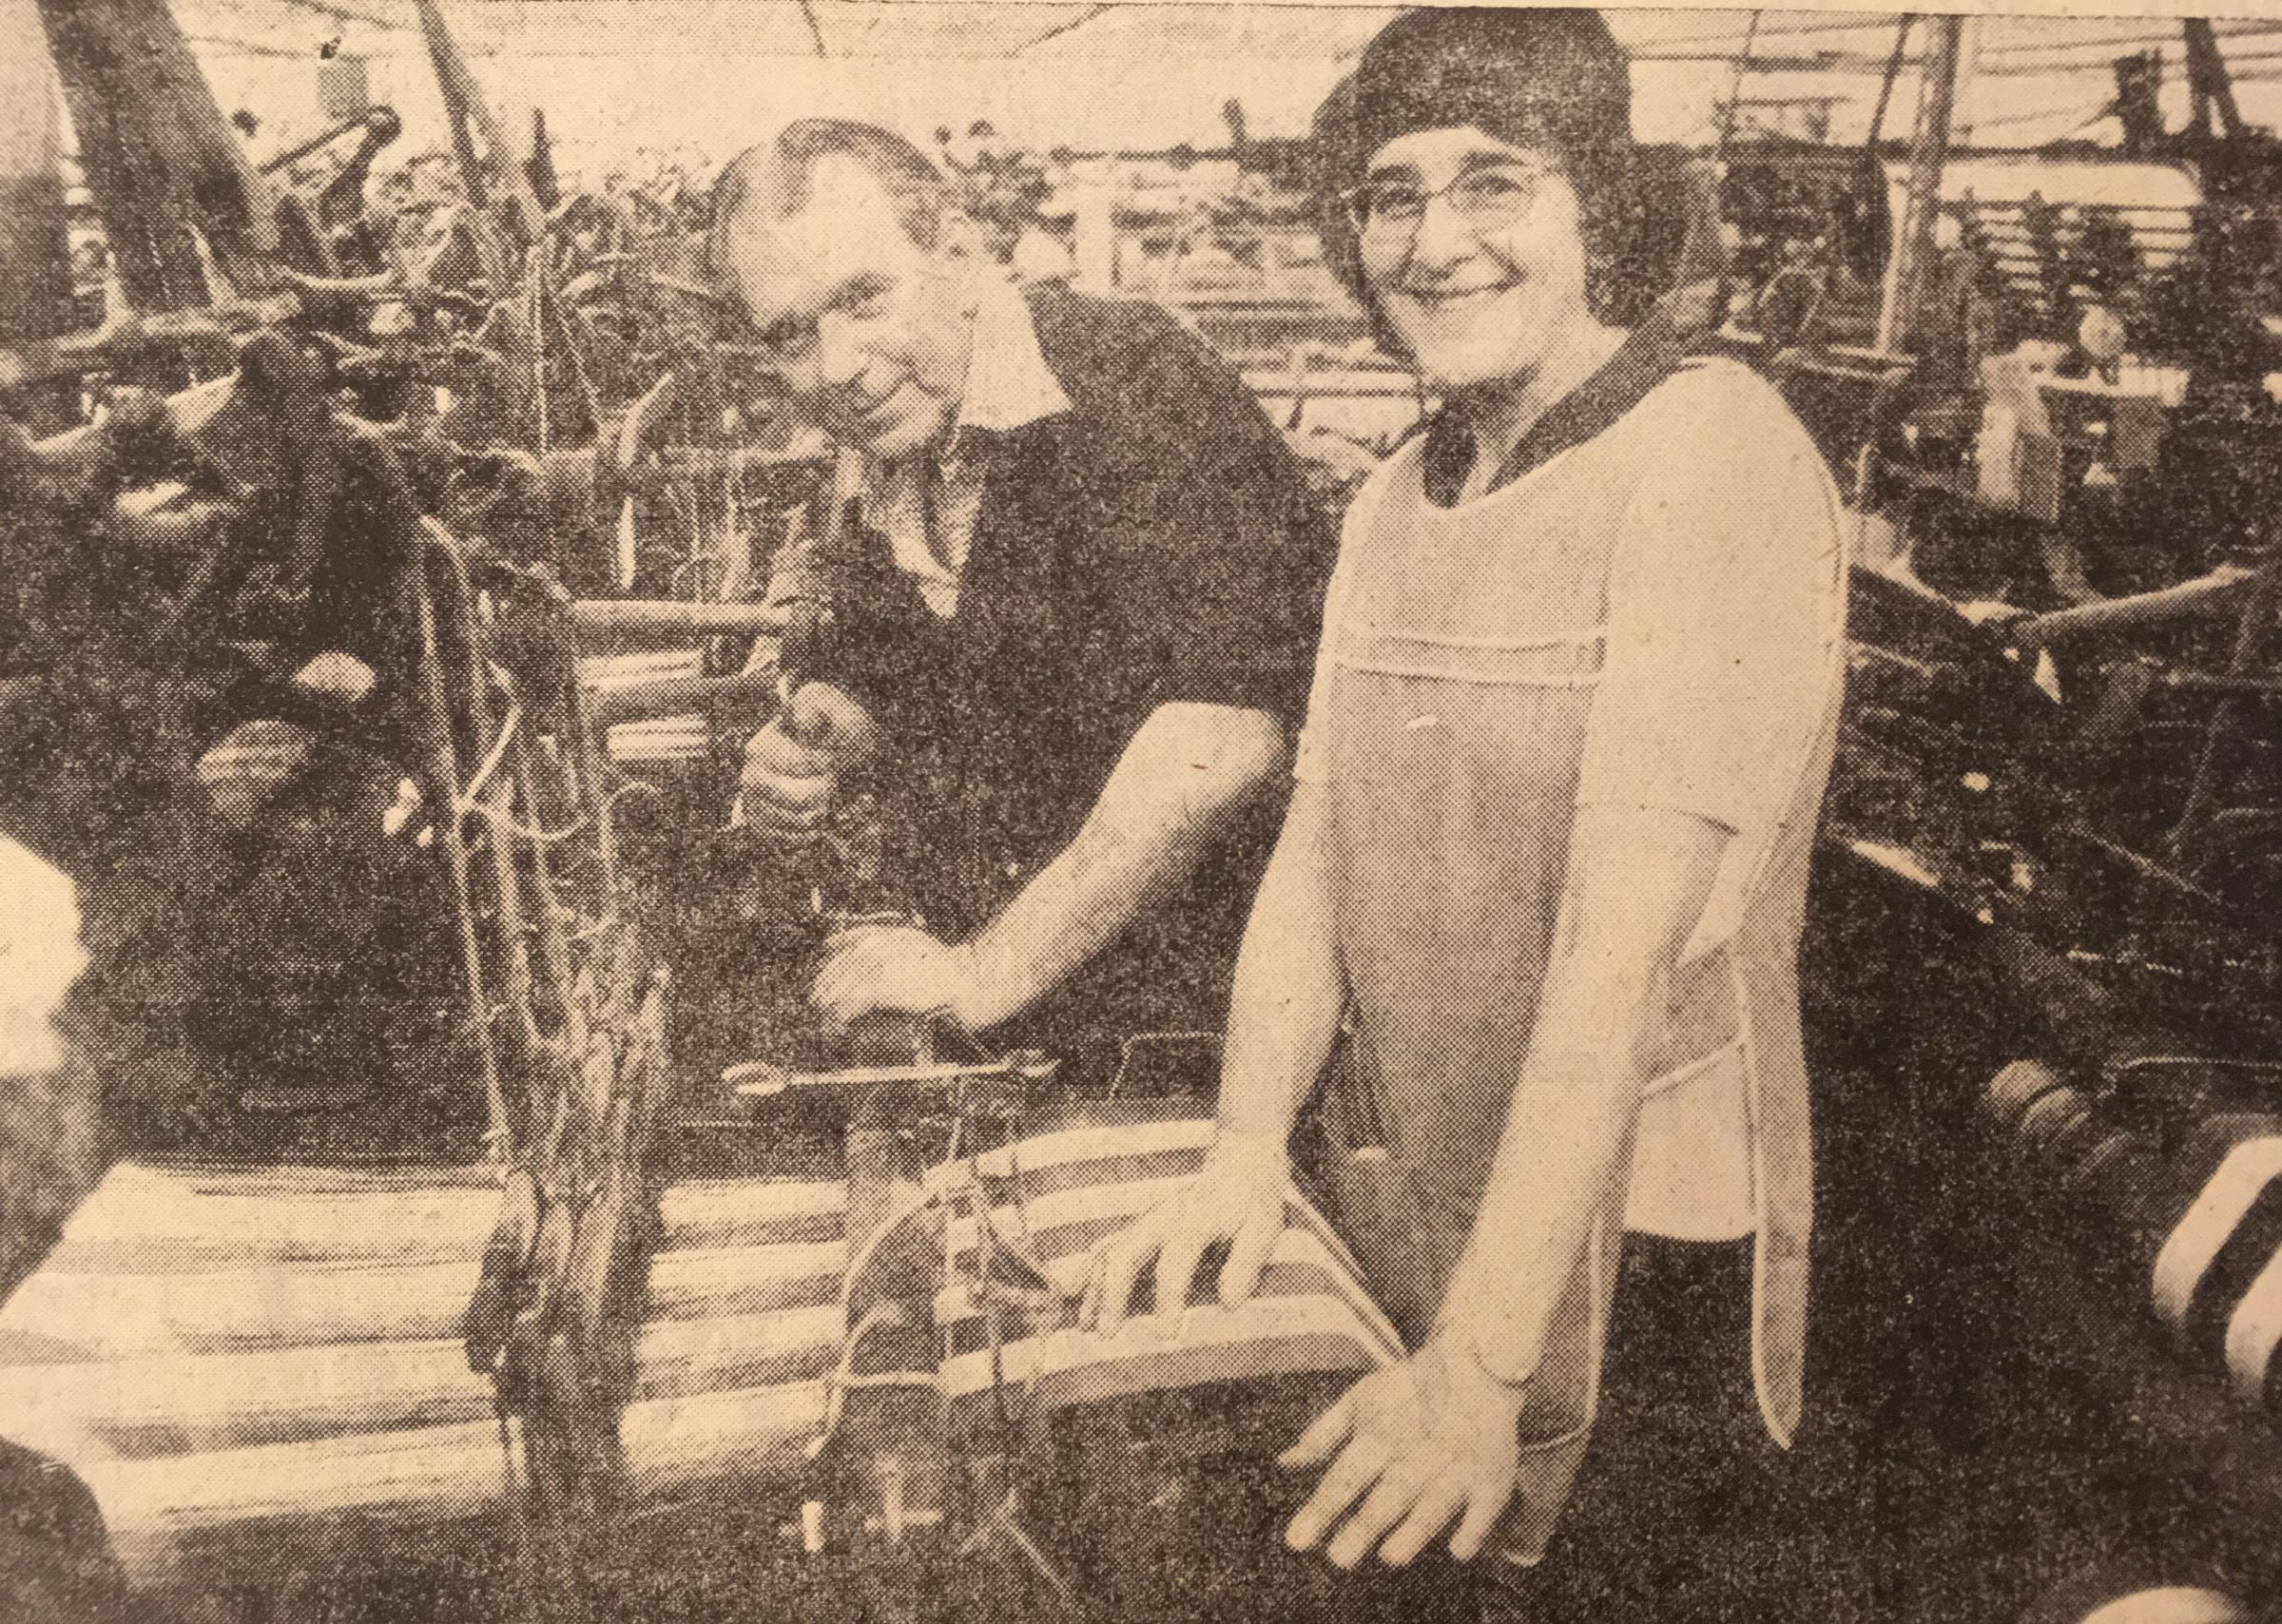 Husband and wife Herbert and Irene Bowker celebrate their Silver Jubilee in the mill in May 1978